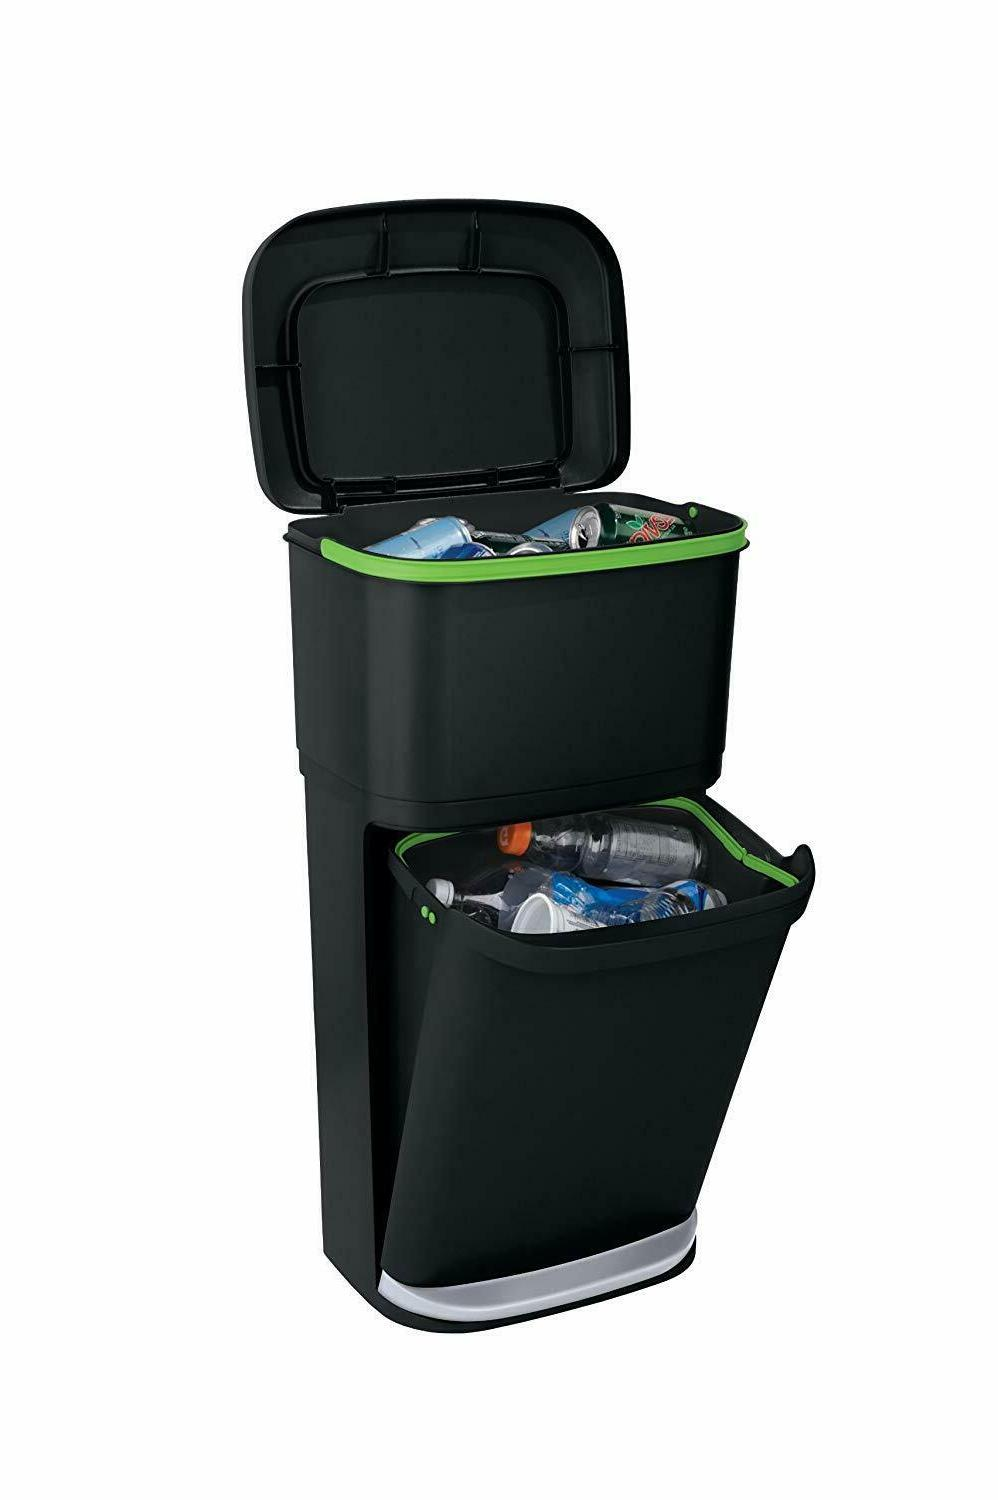 Double Stacking Trash Can Garbage Recycle Bins Step On Rubbi